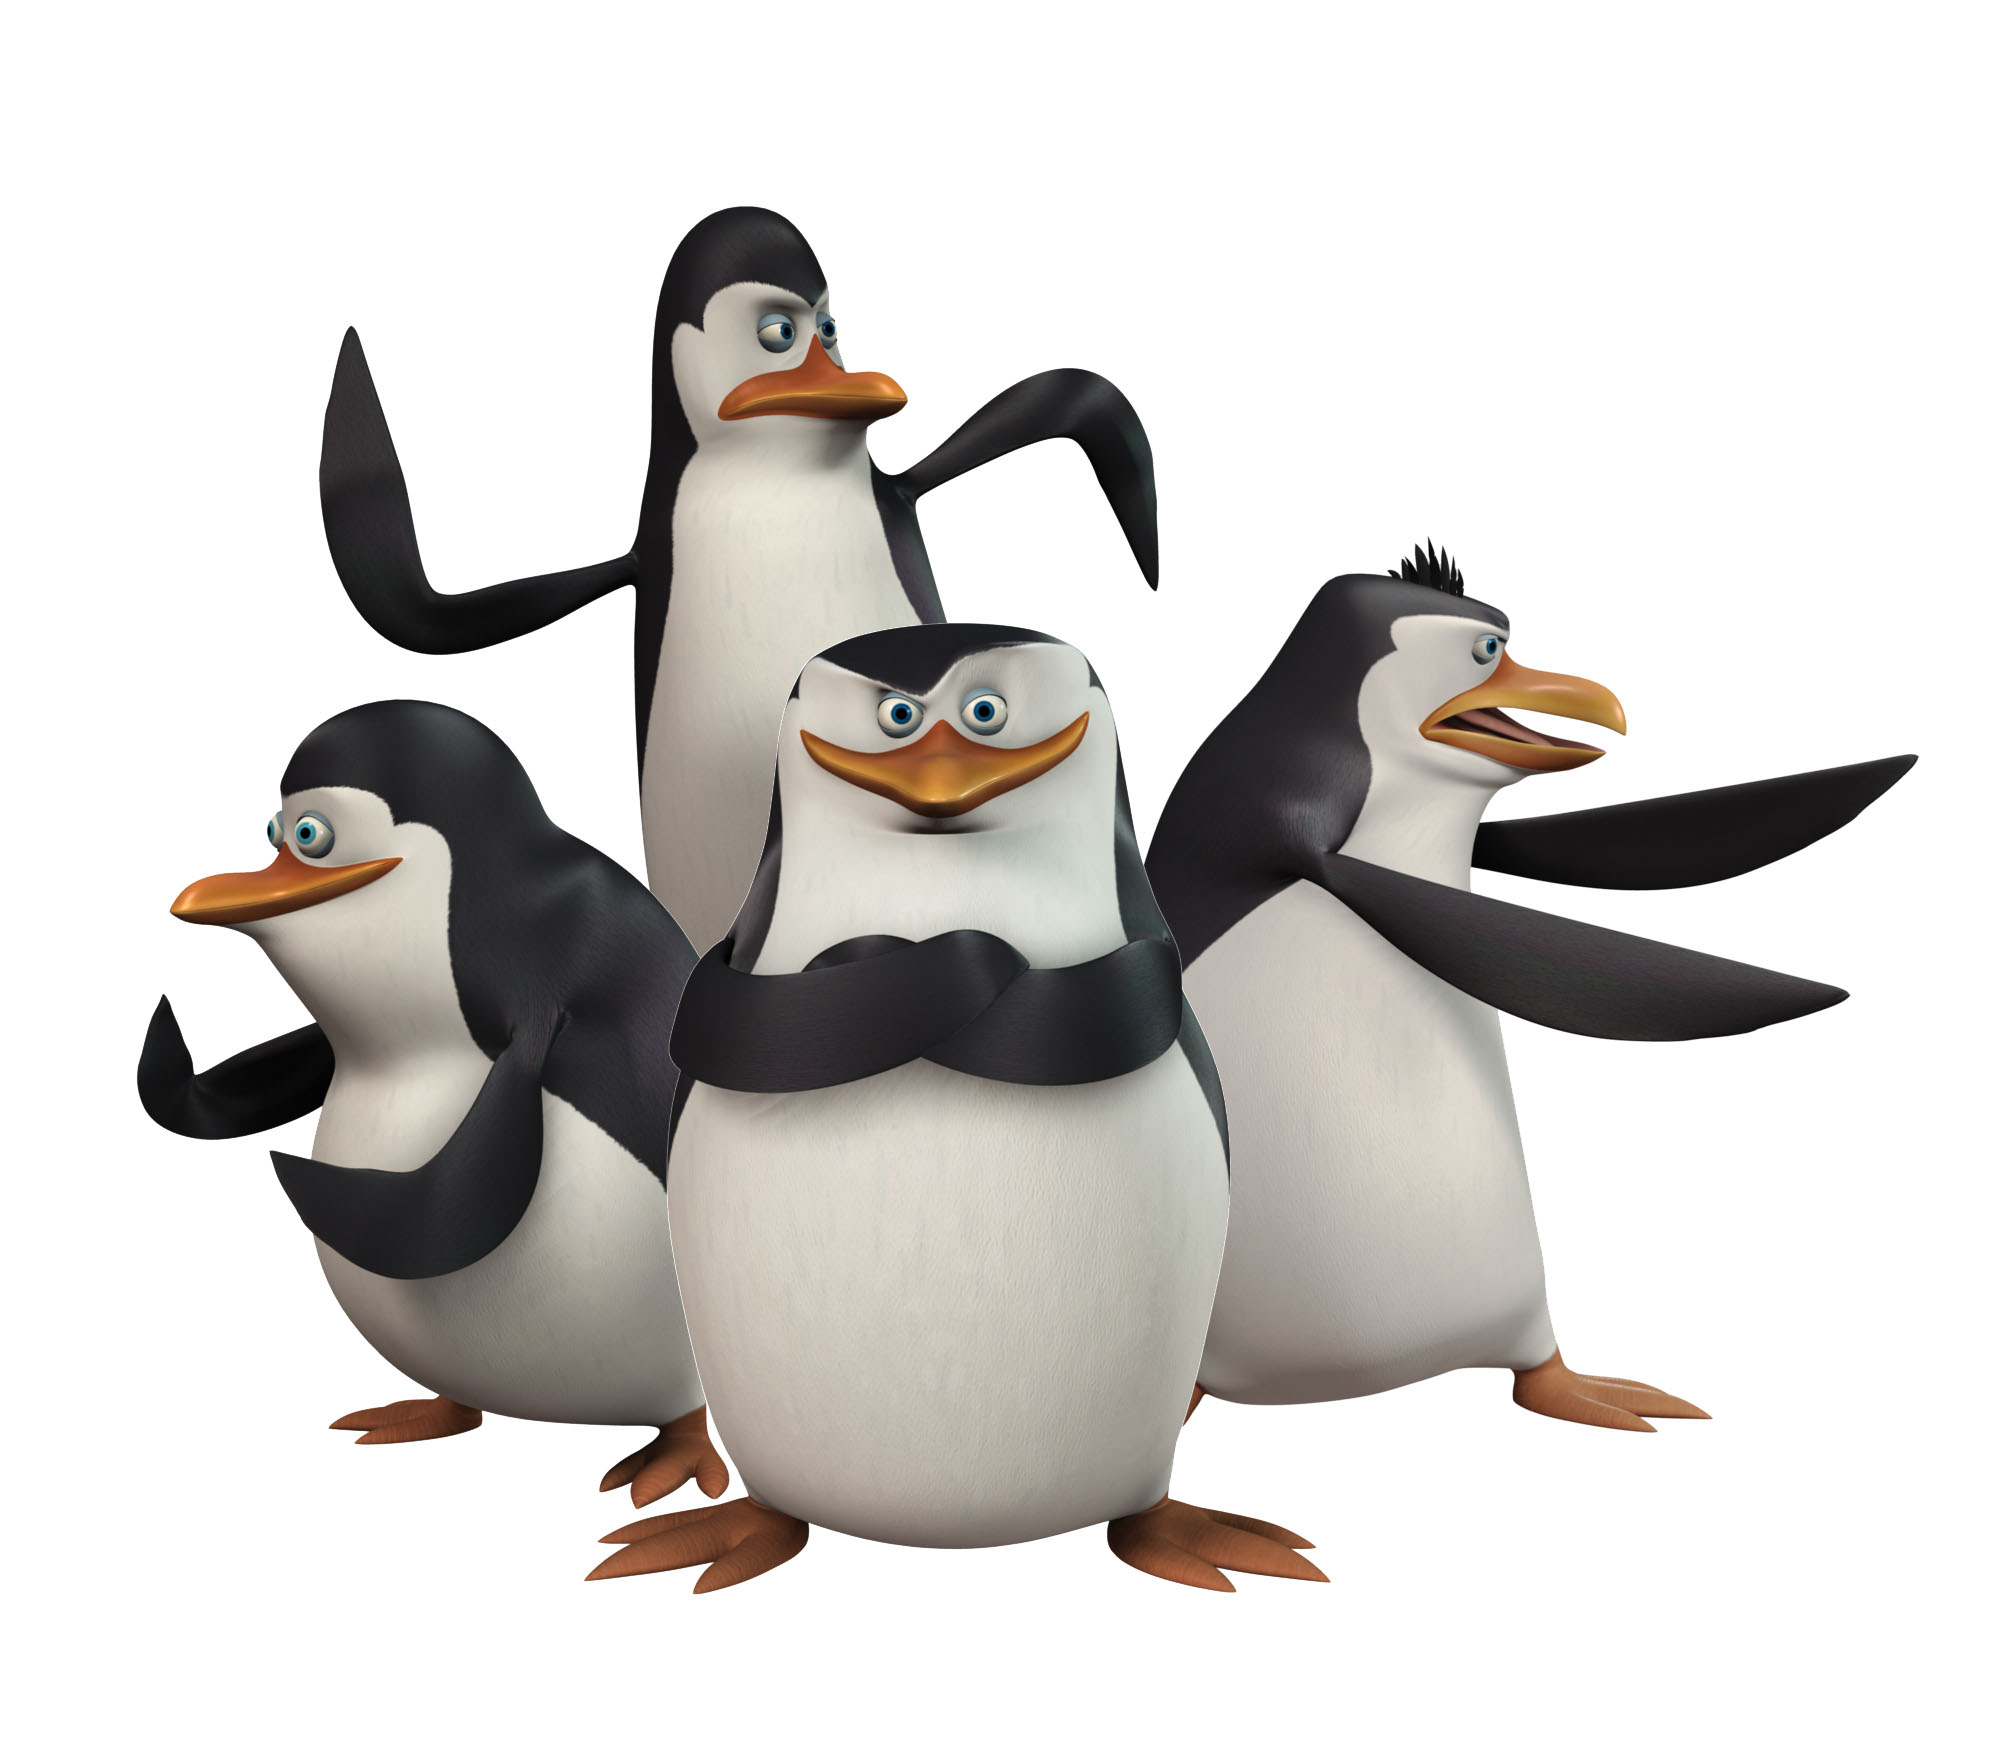 Png file name: penguins of madagascar png clipart dimension: 2000x1271 image type: png posted on: mar 30th